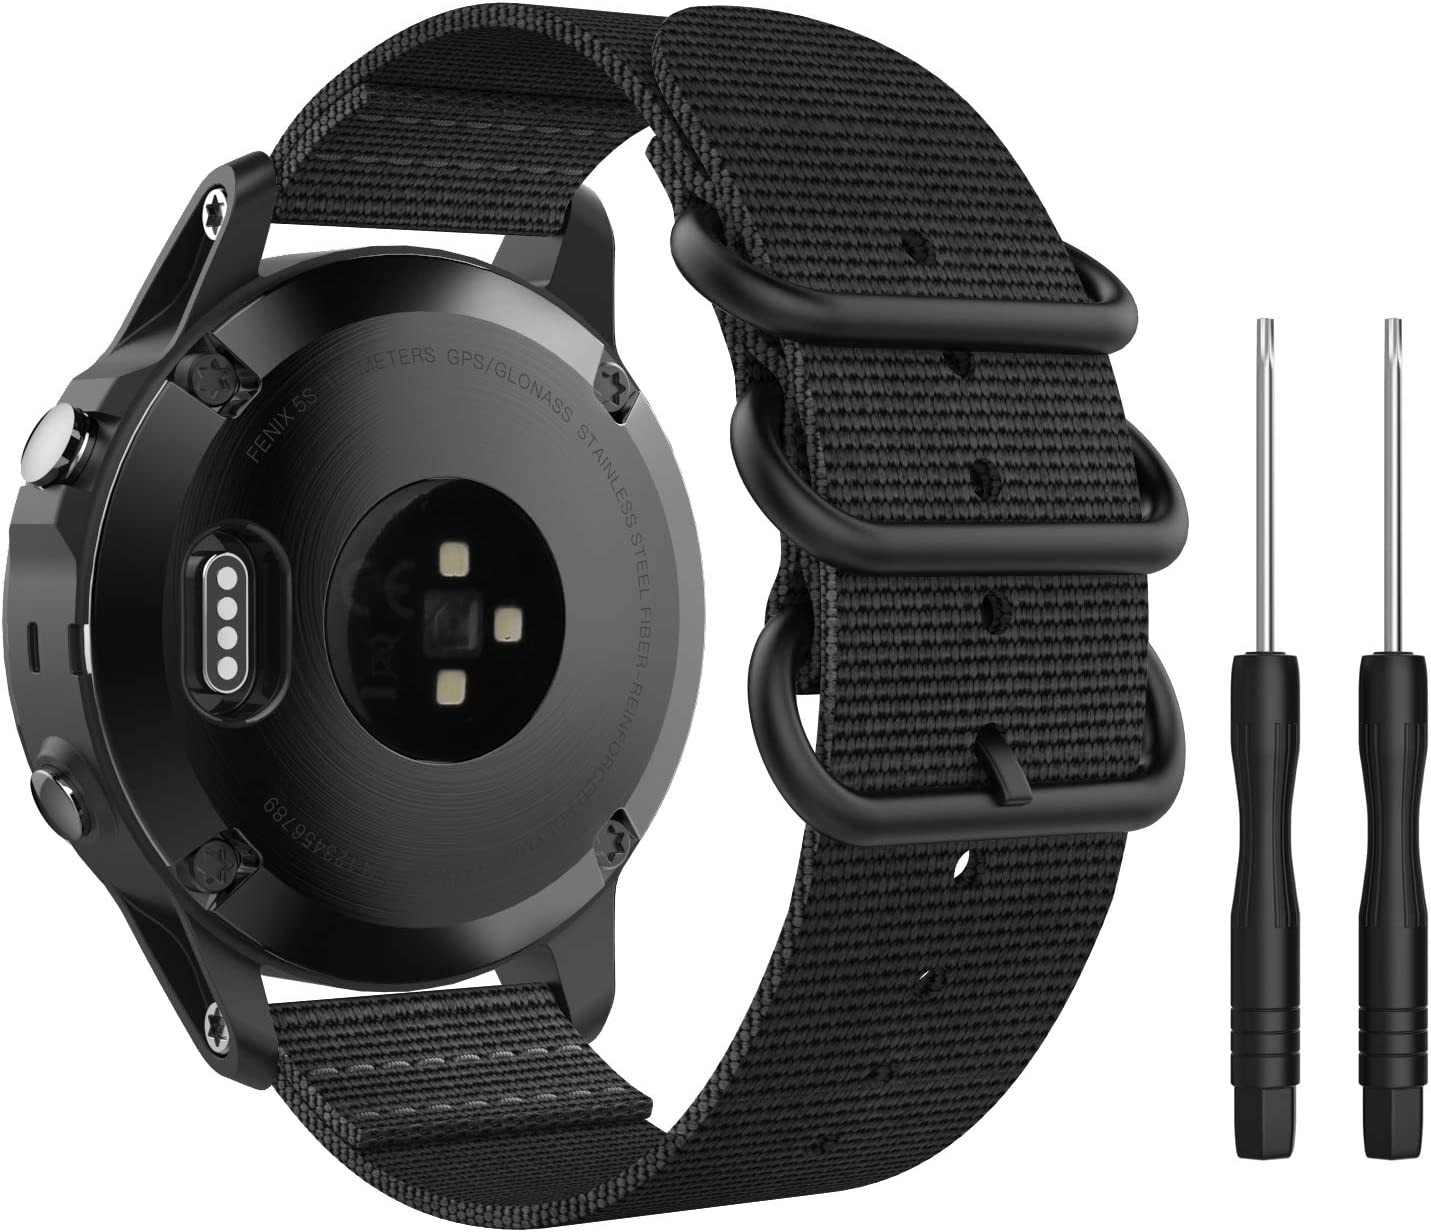 MoKo Band Compatible with Garmin Fenix 5S/Fenix 5S Plus Smart Watch, Fine Woven Nylon Adjustable Replacement Strap with Metal Buckle - Black